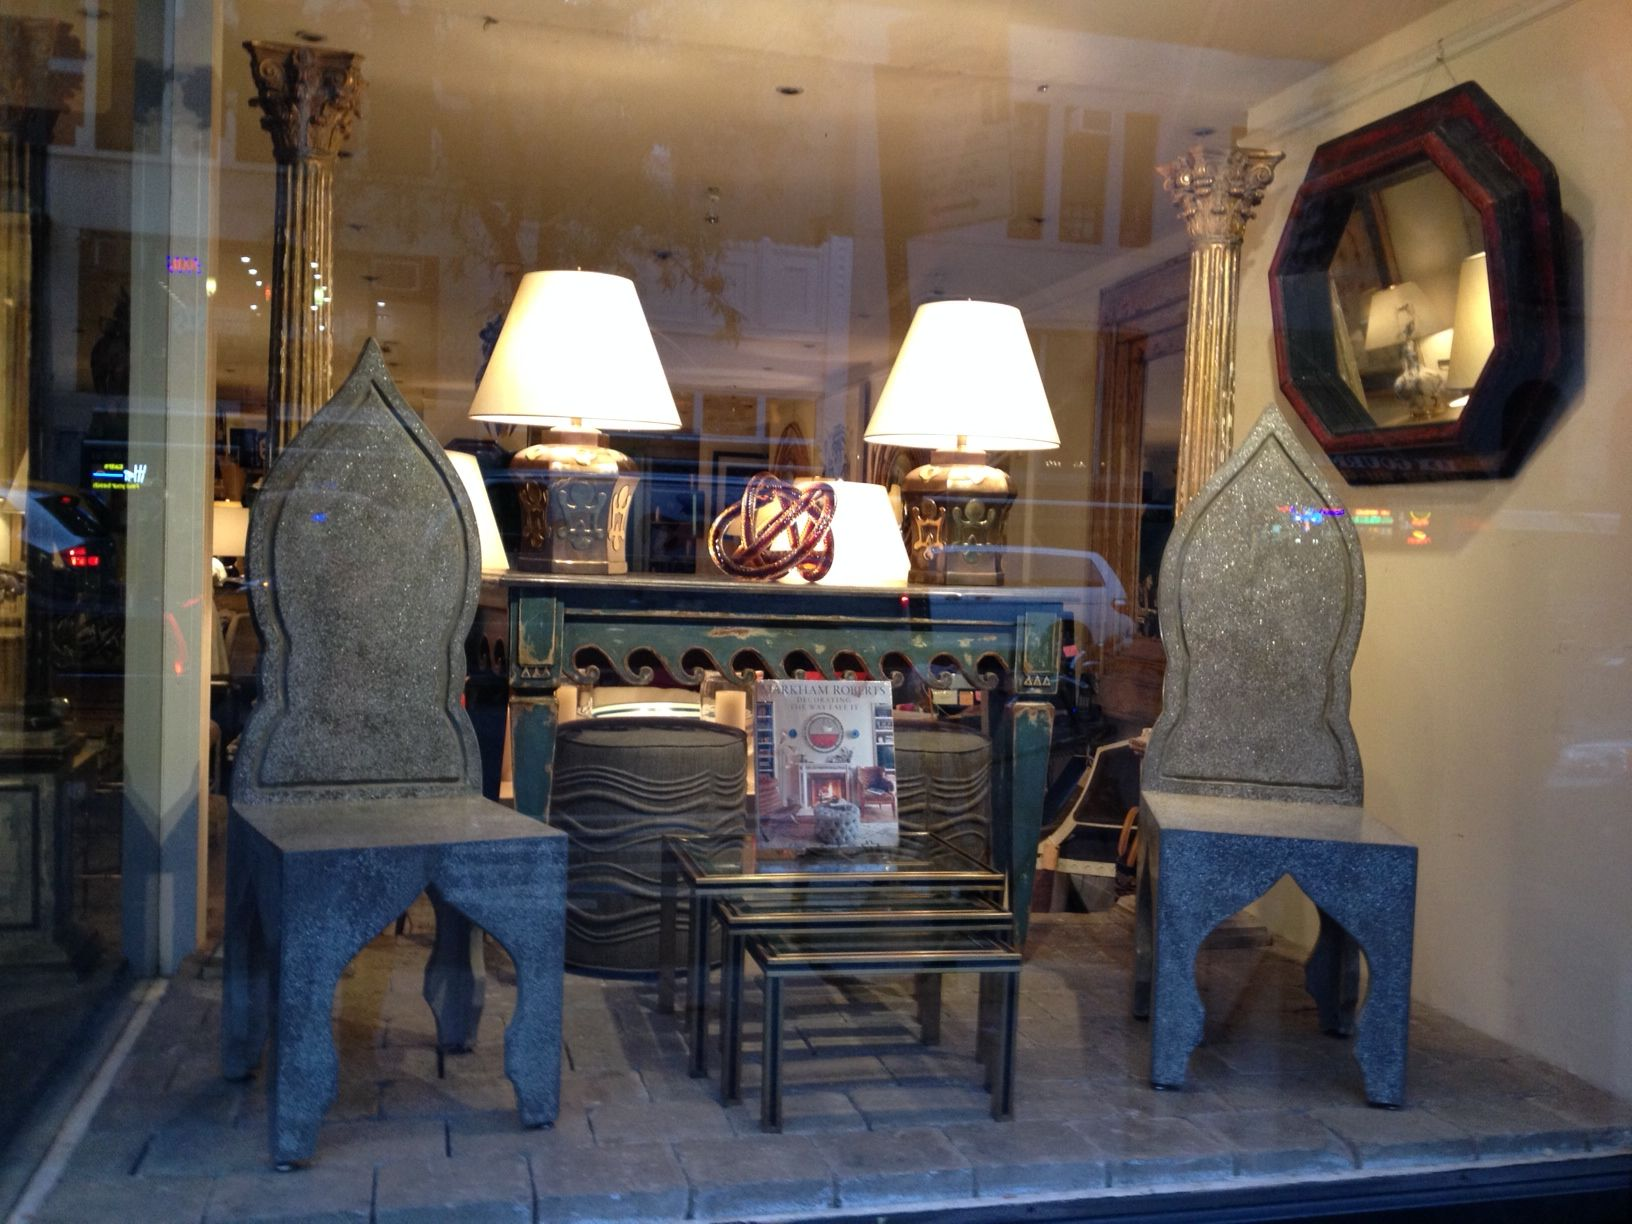 New York #Mecox #window #display with #side #chairs and wave #decor #console - must haves this season! #NYC #MecoxGardens #furniture #shopping #home #decor #design #room #designidea #vintage #antiques #garden